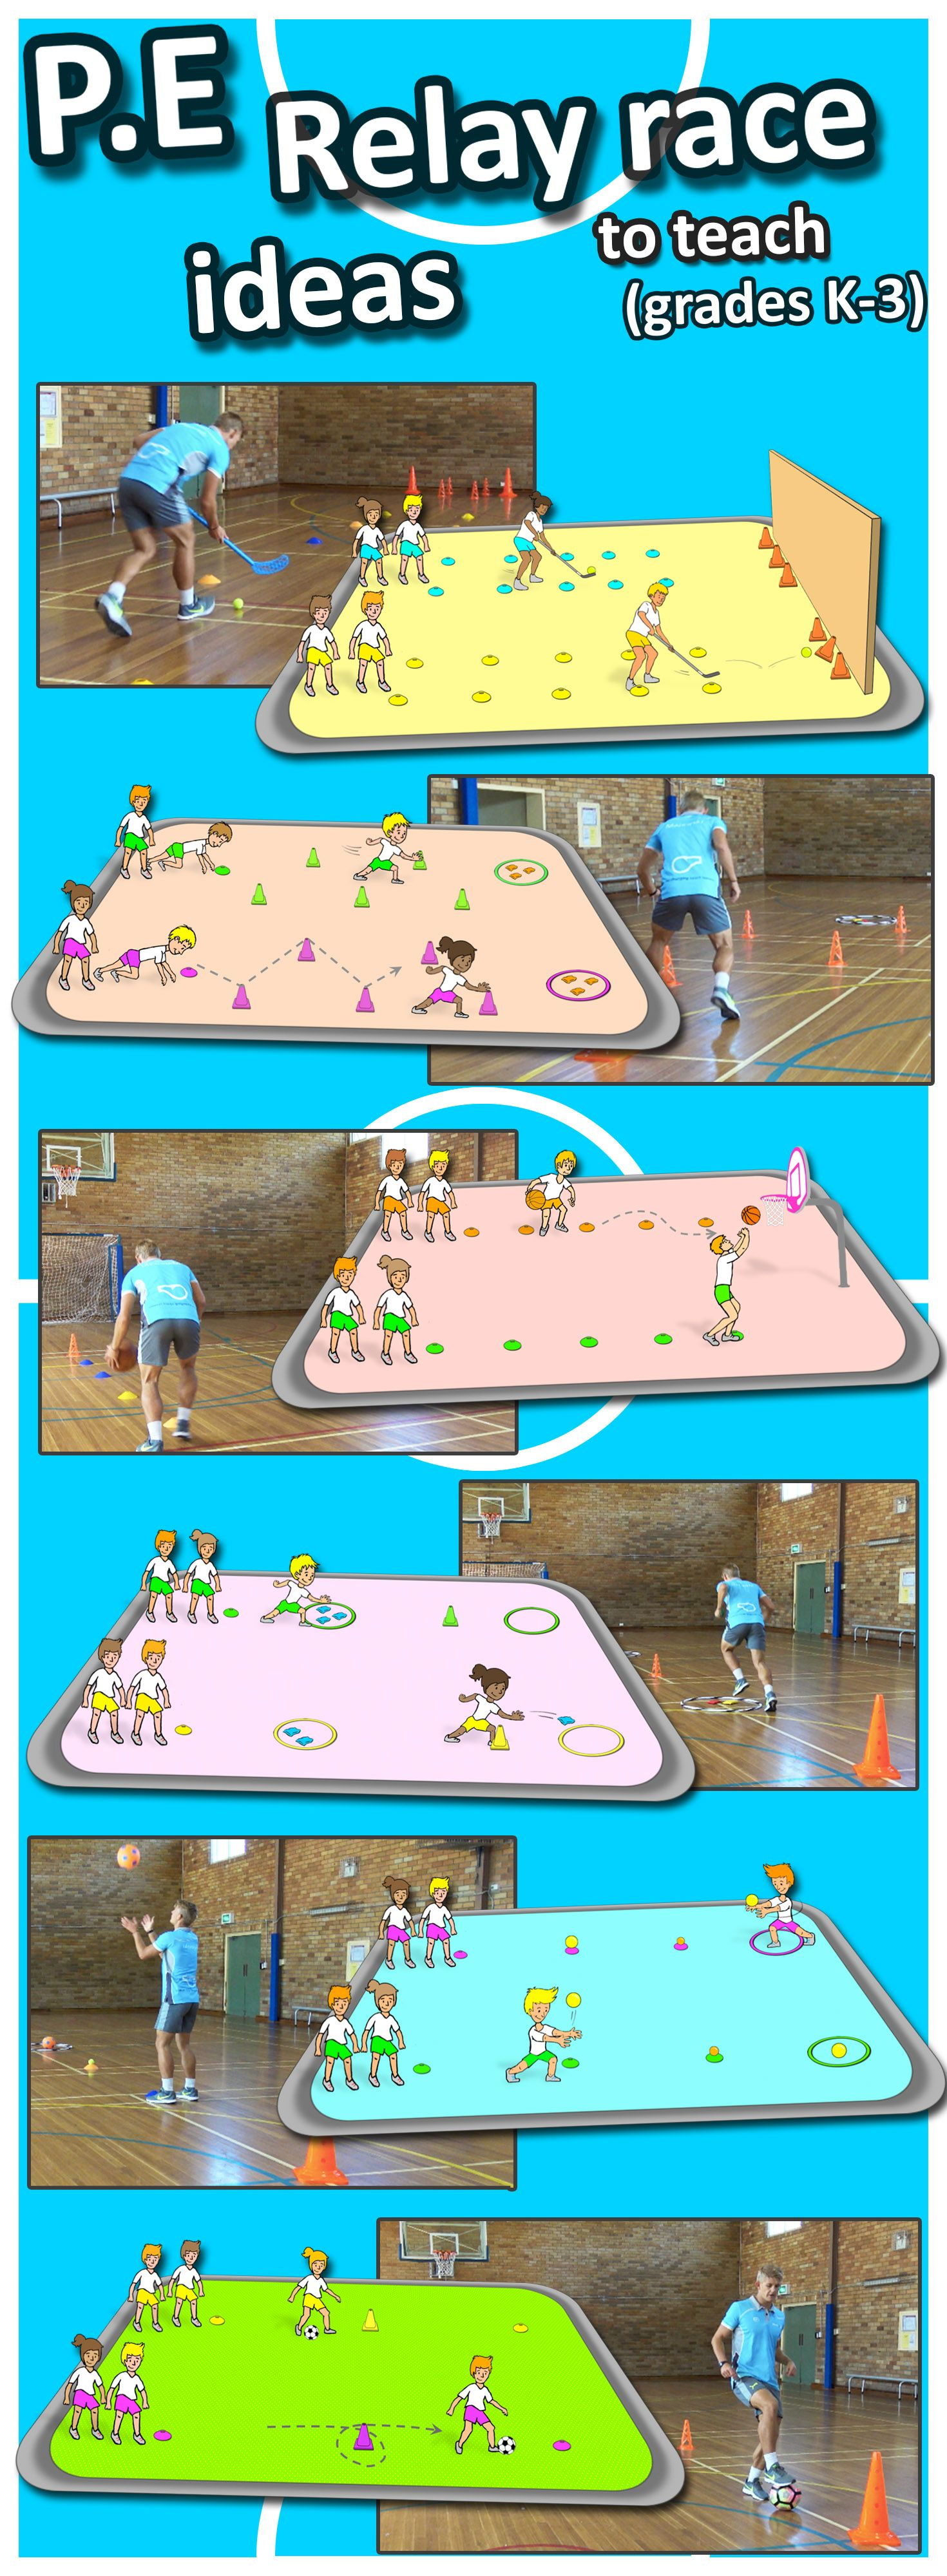 Try Some Awesome Pe Teaching Ideas With These Relay Race Activities Great For Grade K 3